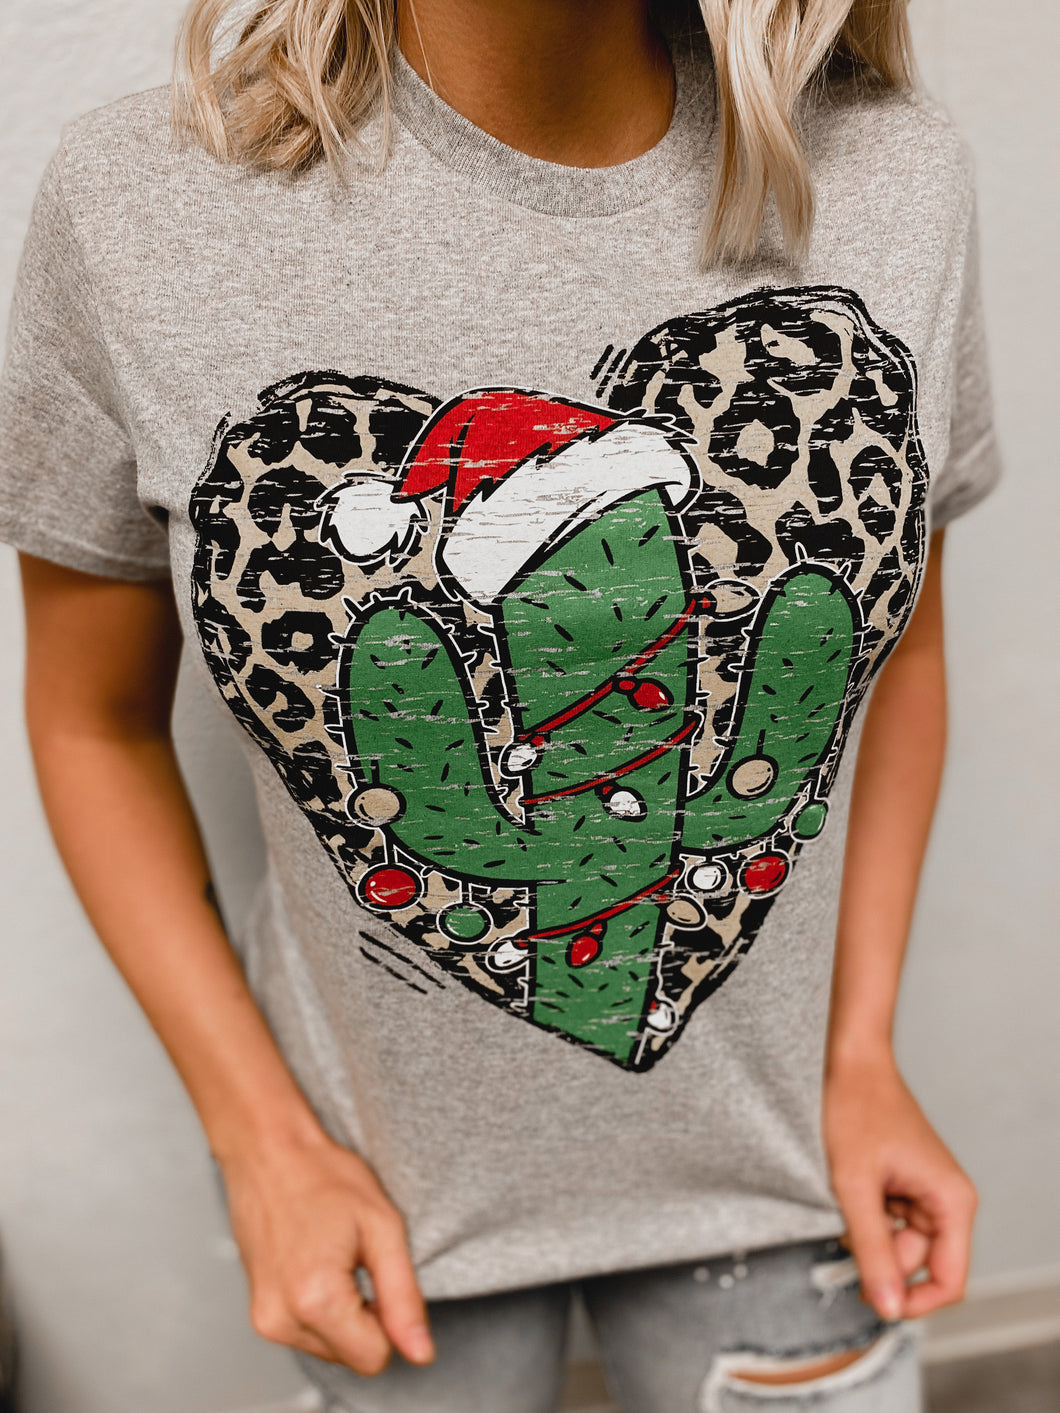 Leopard Cactus T-Shirt-T-Shirt-Davenport-Christmas tee, november2020, t-shirt-The Twisted Chandelier